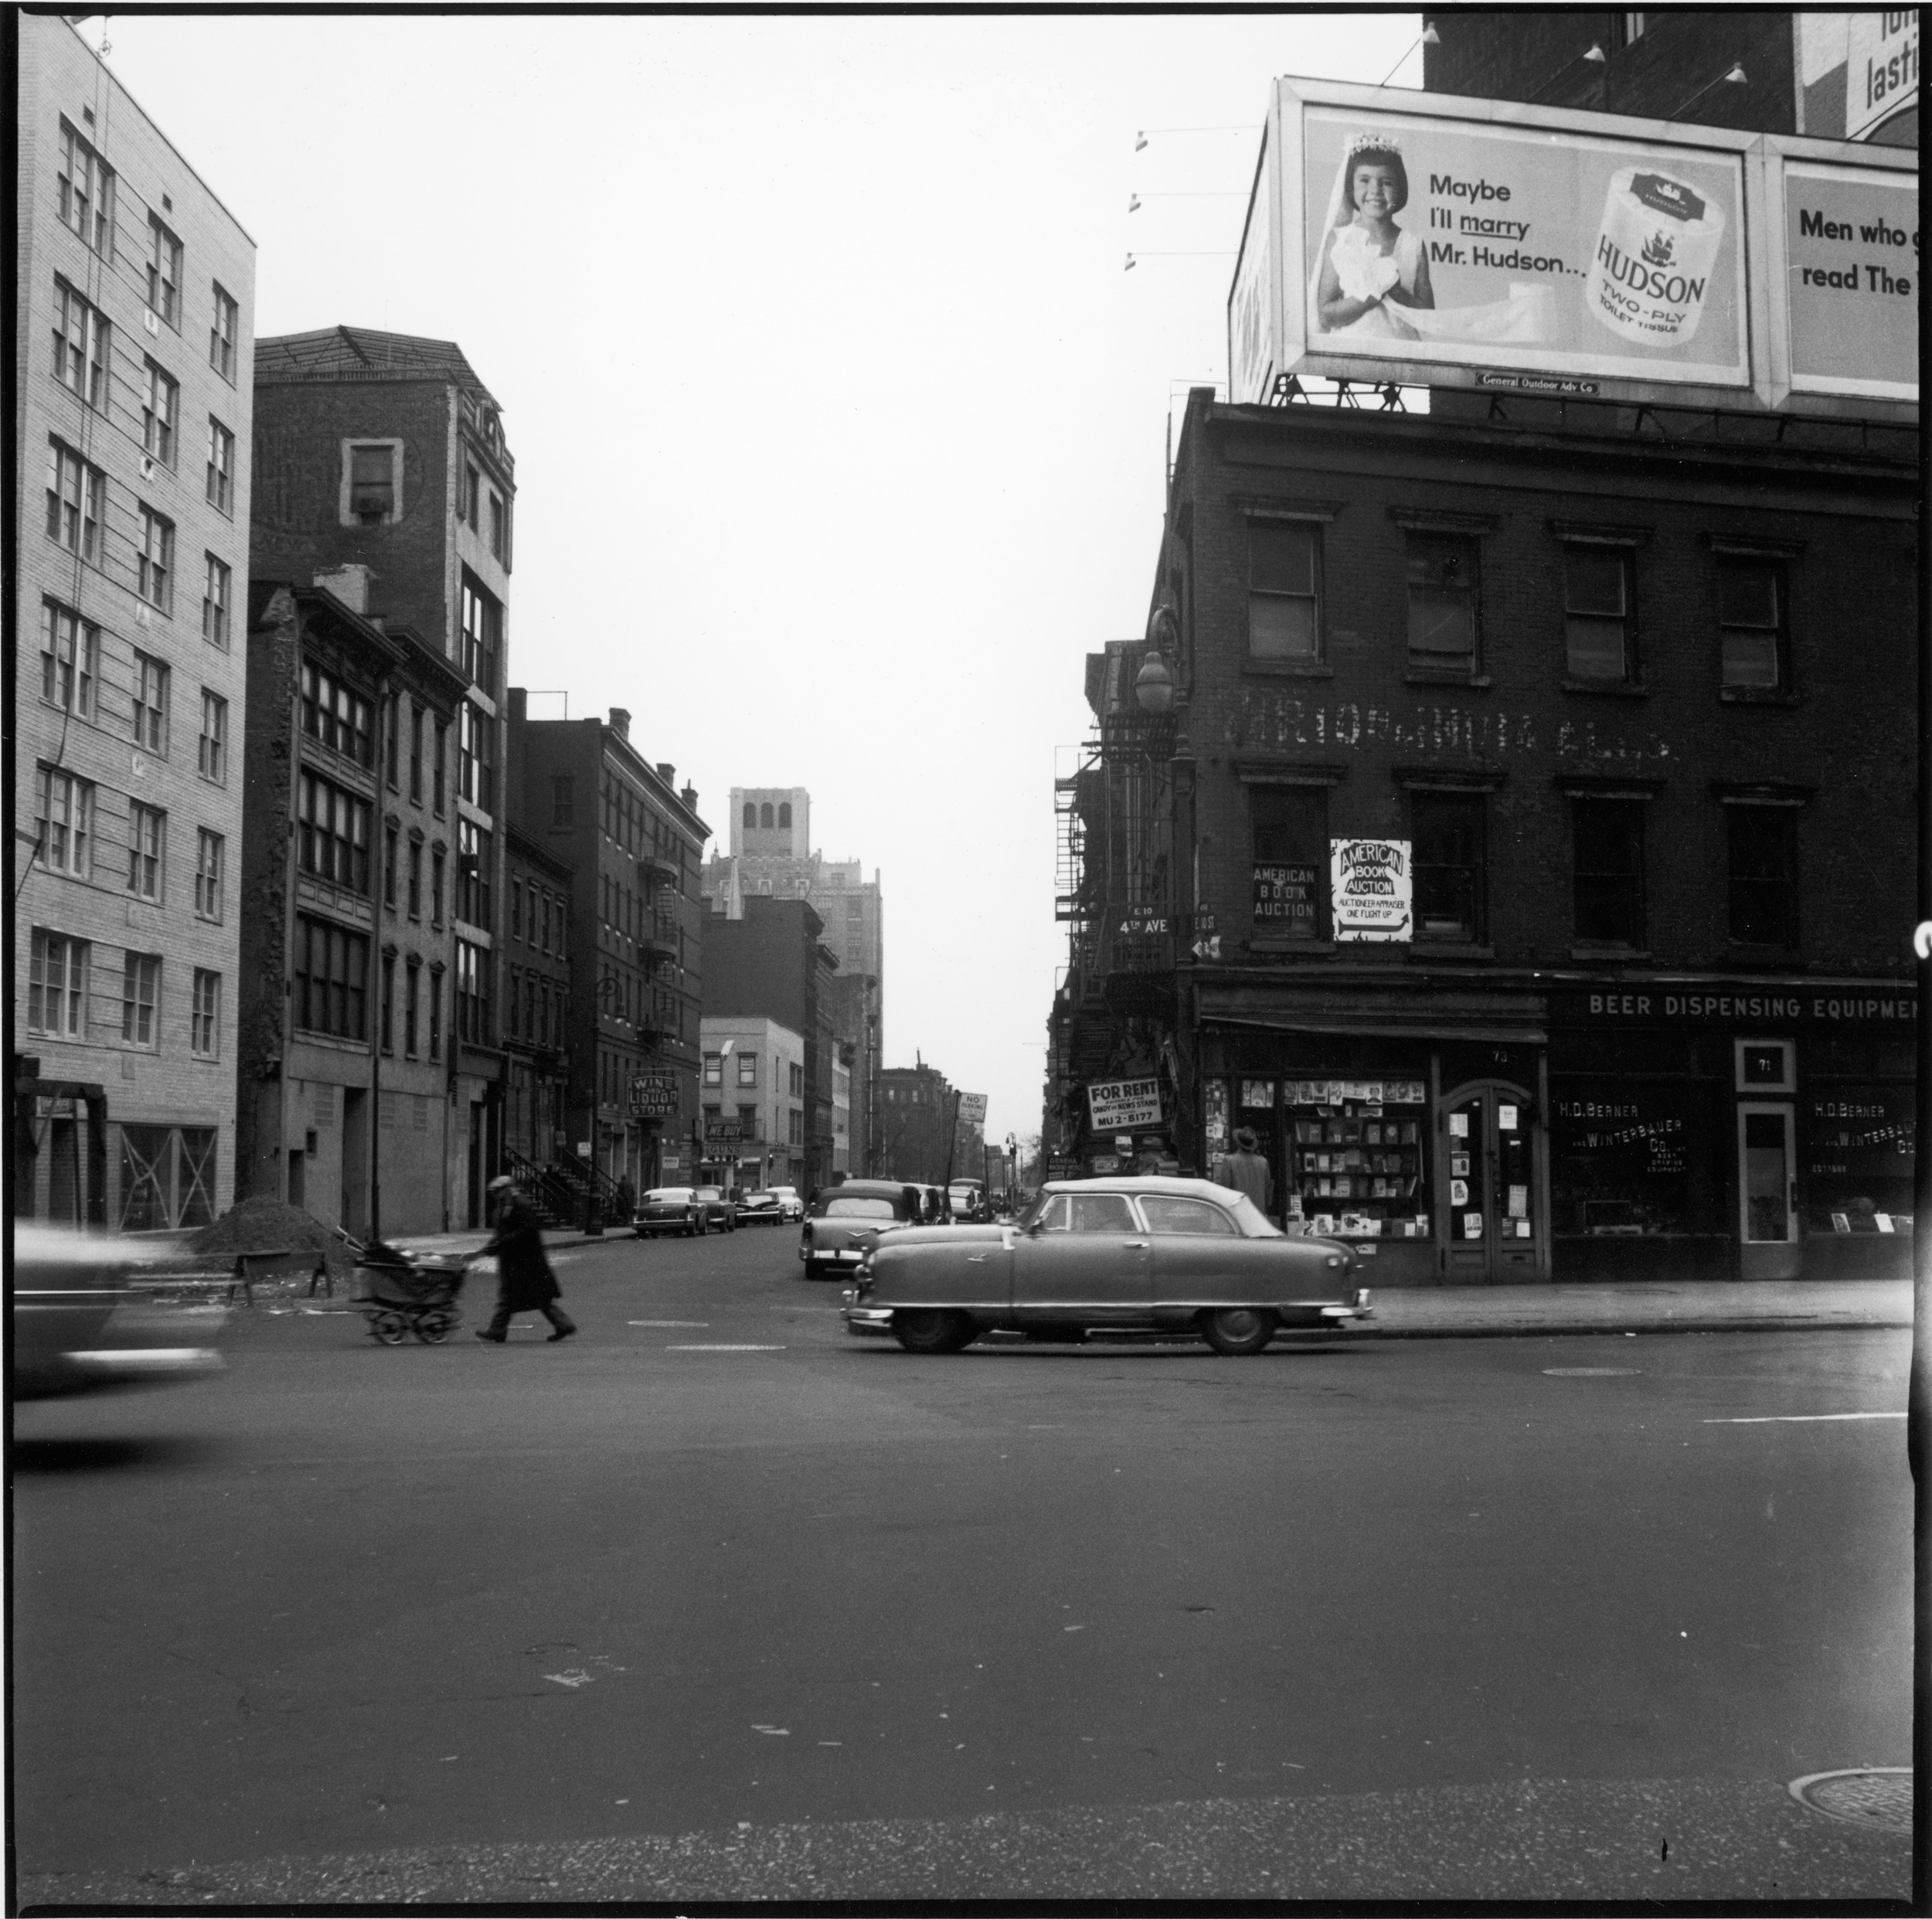 Above: looking east along 10th Street at the intersection of 4th Avenue, January 24, 1959. The corner building at right, 73 4th Ave, was one of the six locations of the Artist's Club, a gathering place for artists, critics, and interested others of all kinds. Below, same view March 2016. Photos © Estate of Fred W. McDarrah.